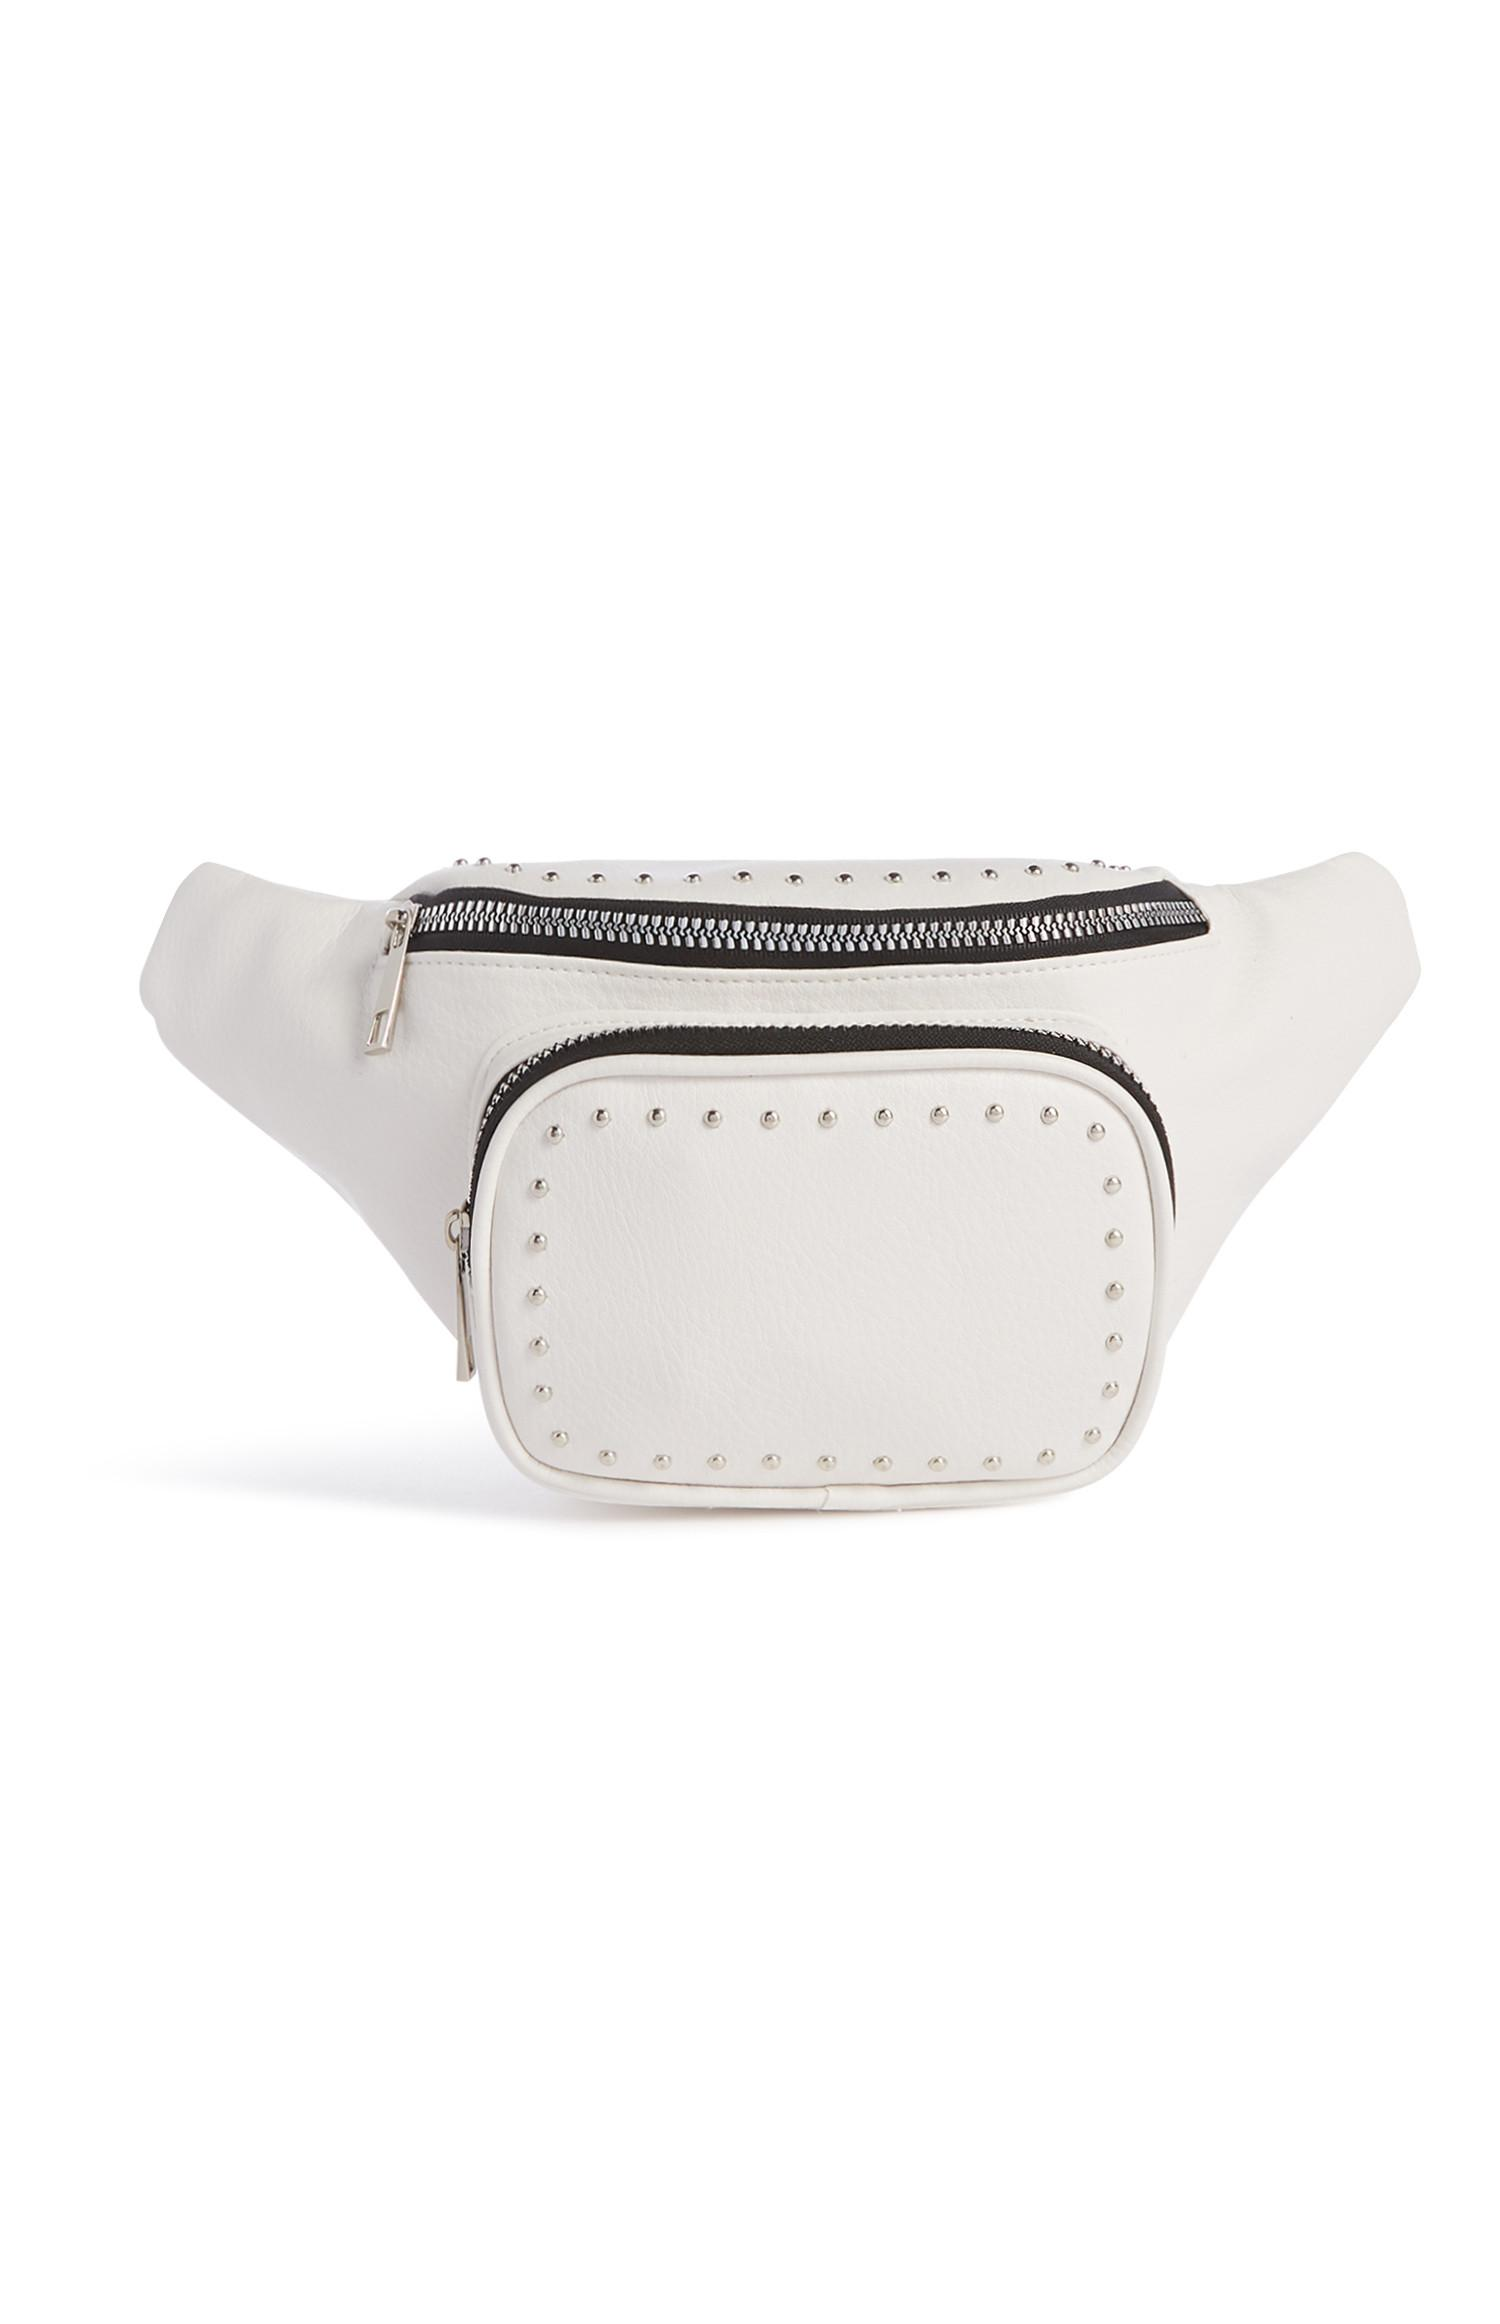 White Stud Fanny Pack